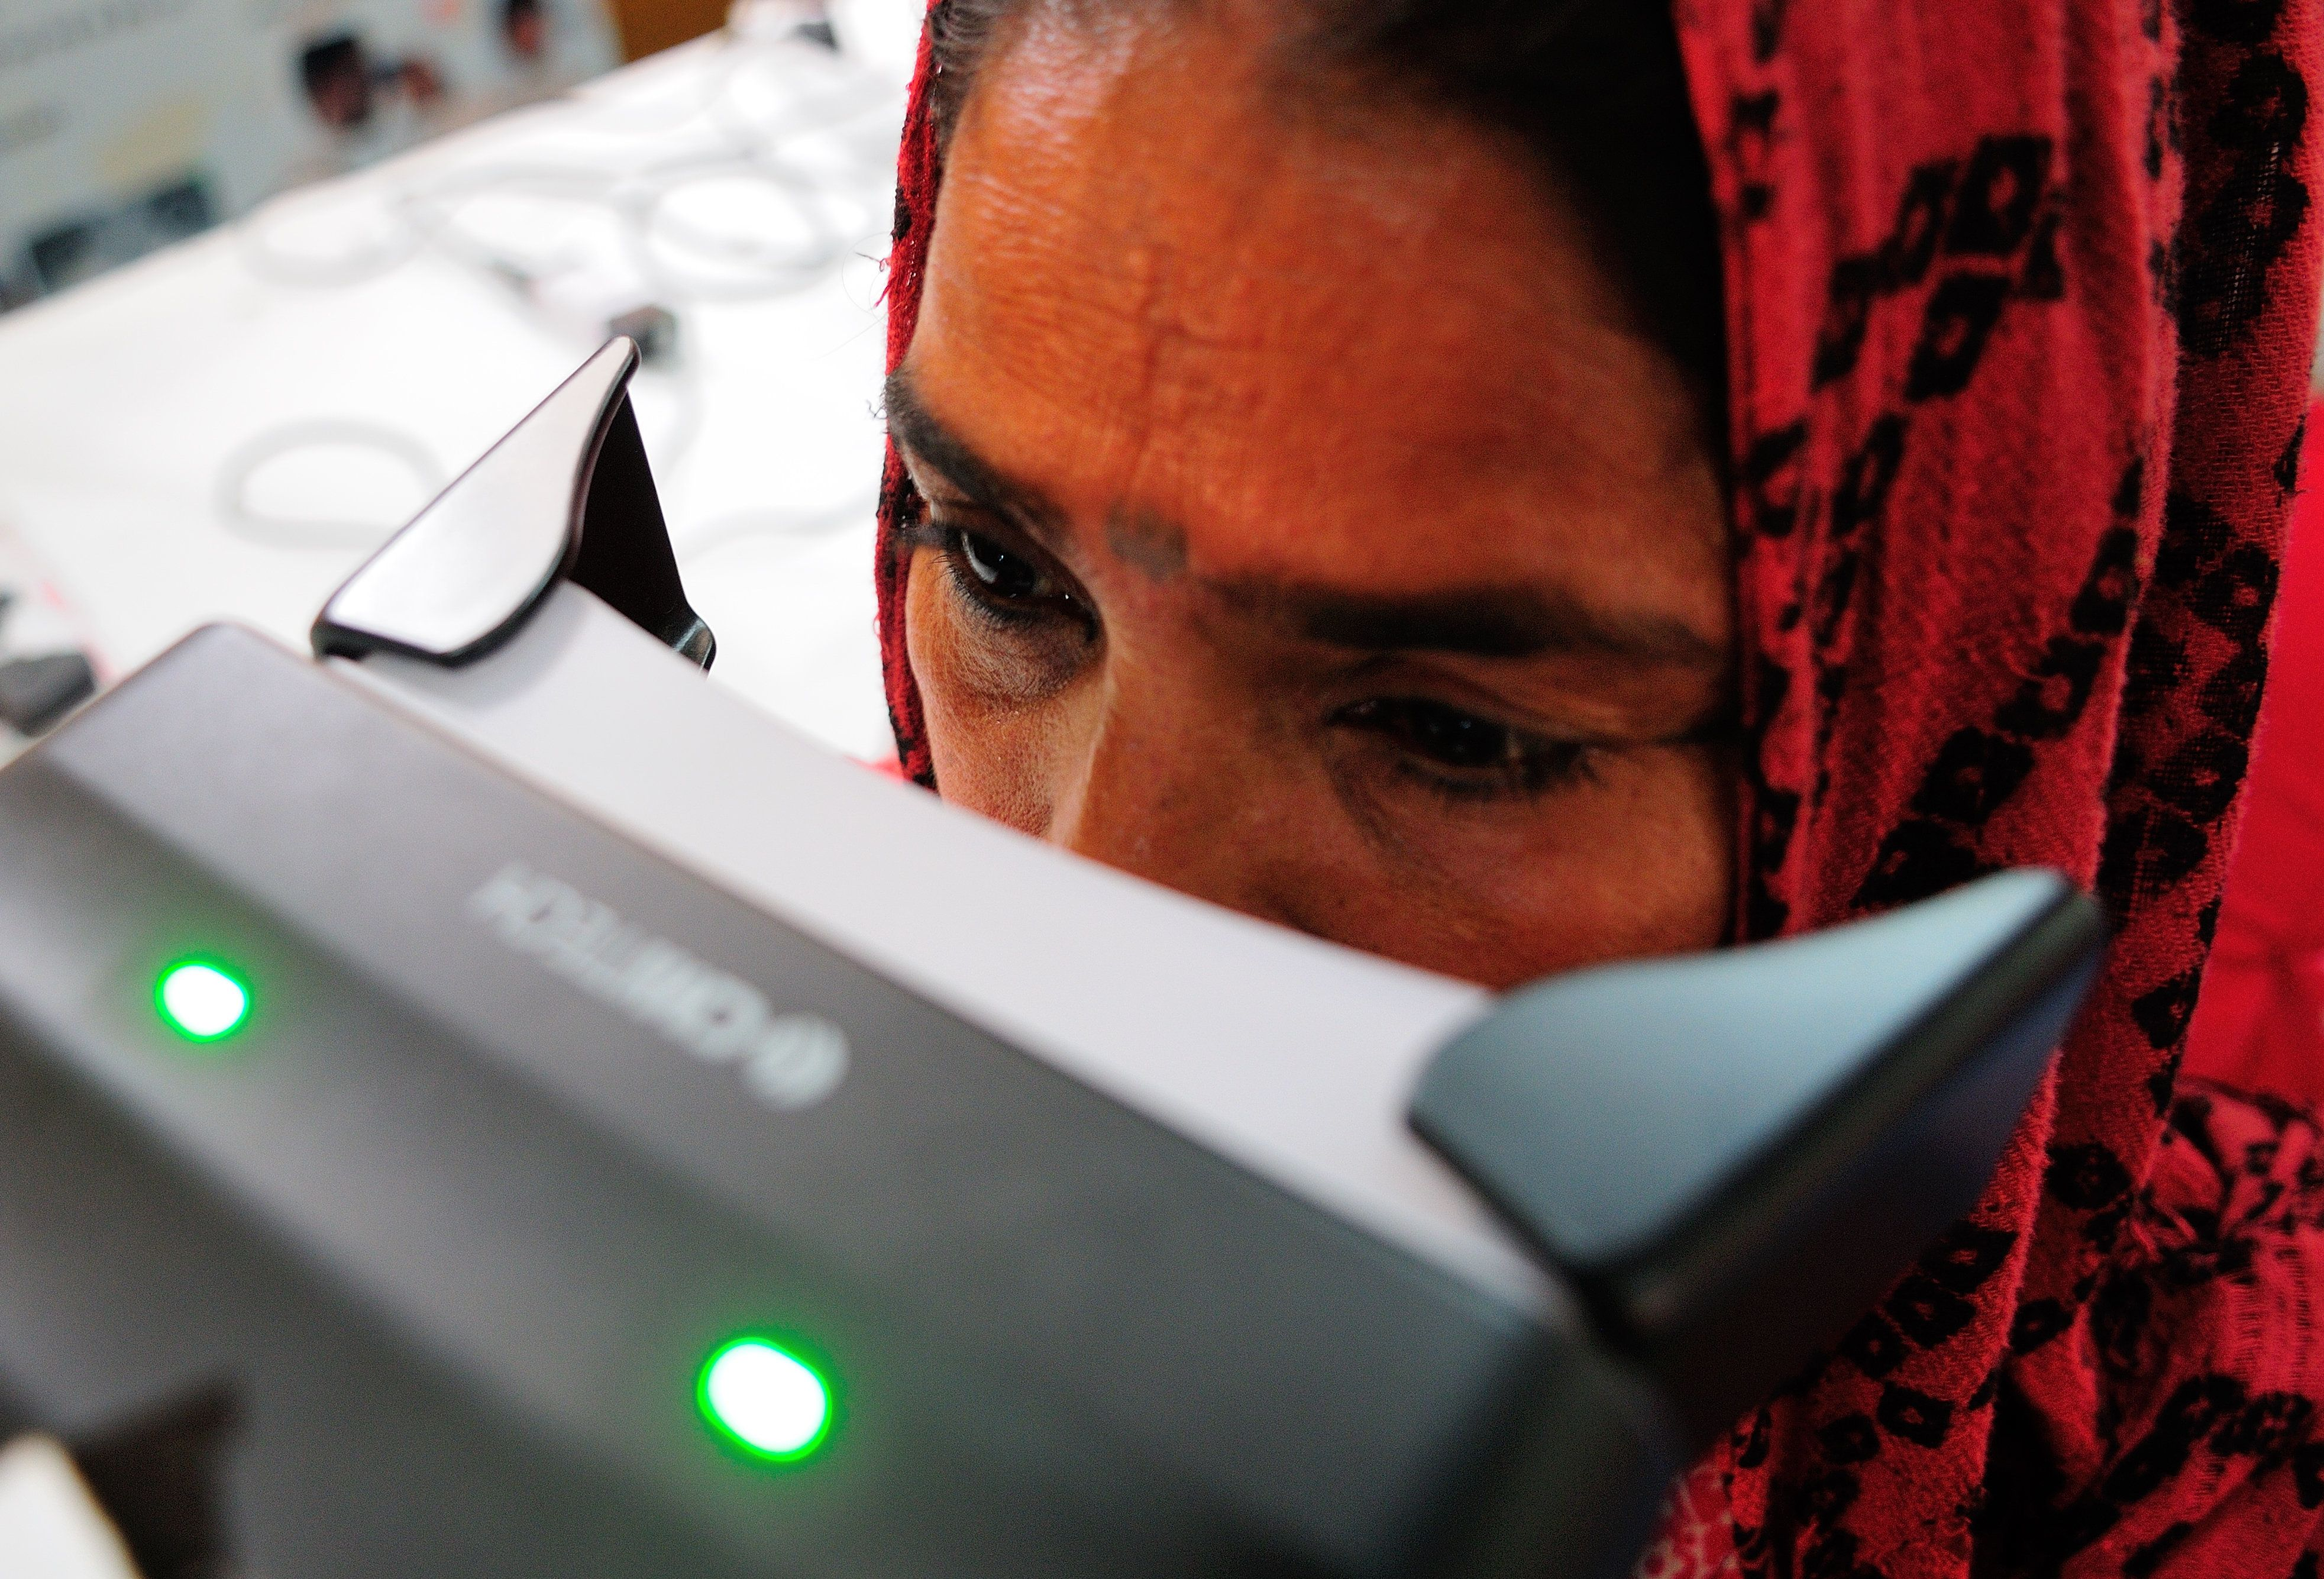 India's Biometric Database Is Creating A Perfect Surveillance State — And U.S. Tech Companies Are On Board